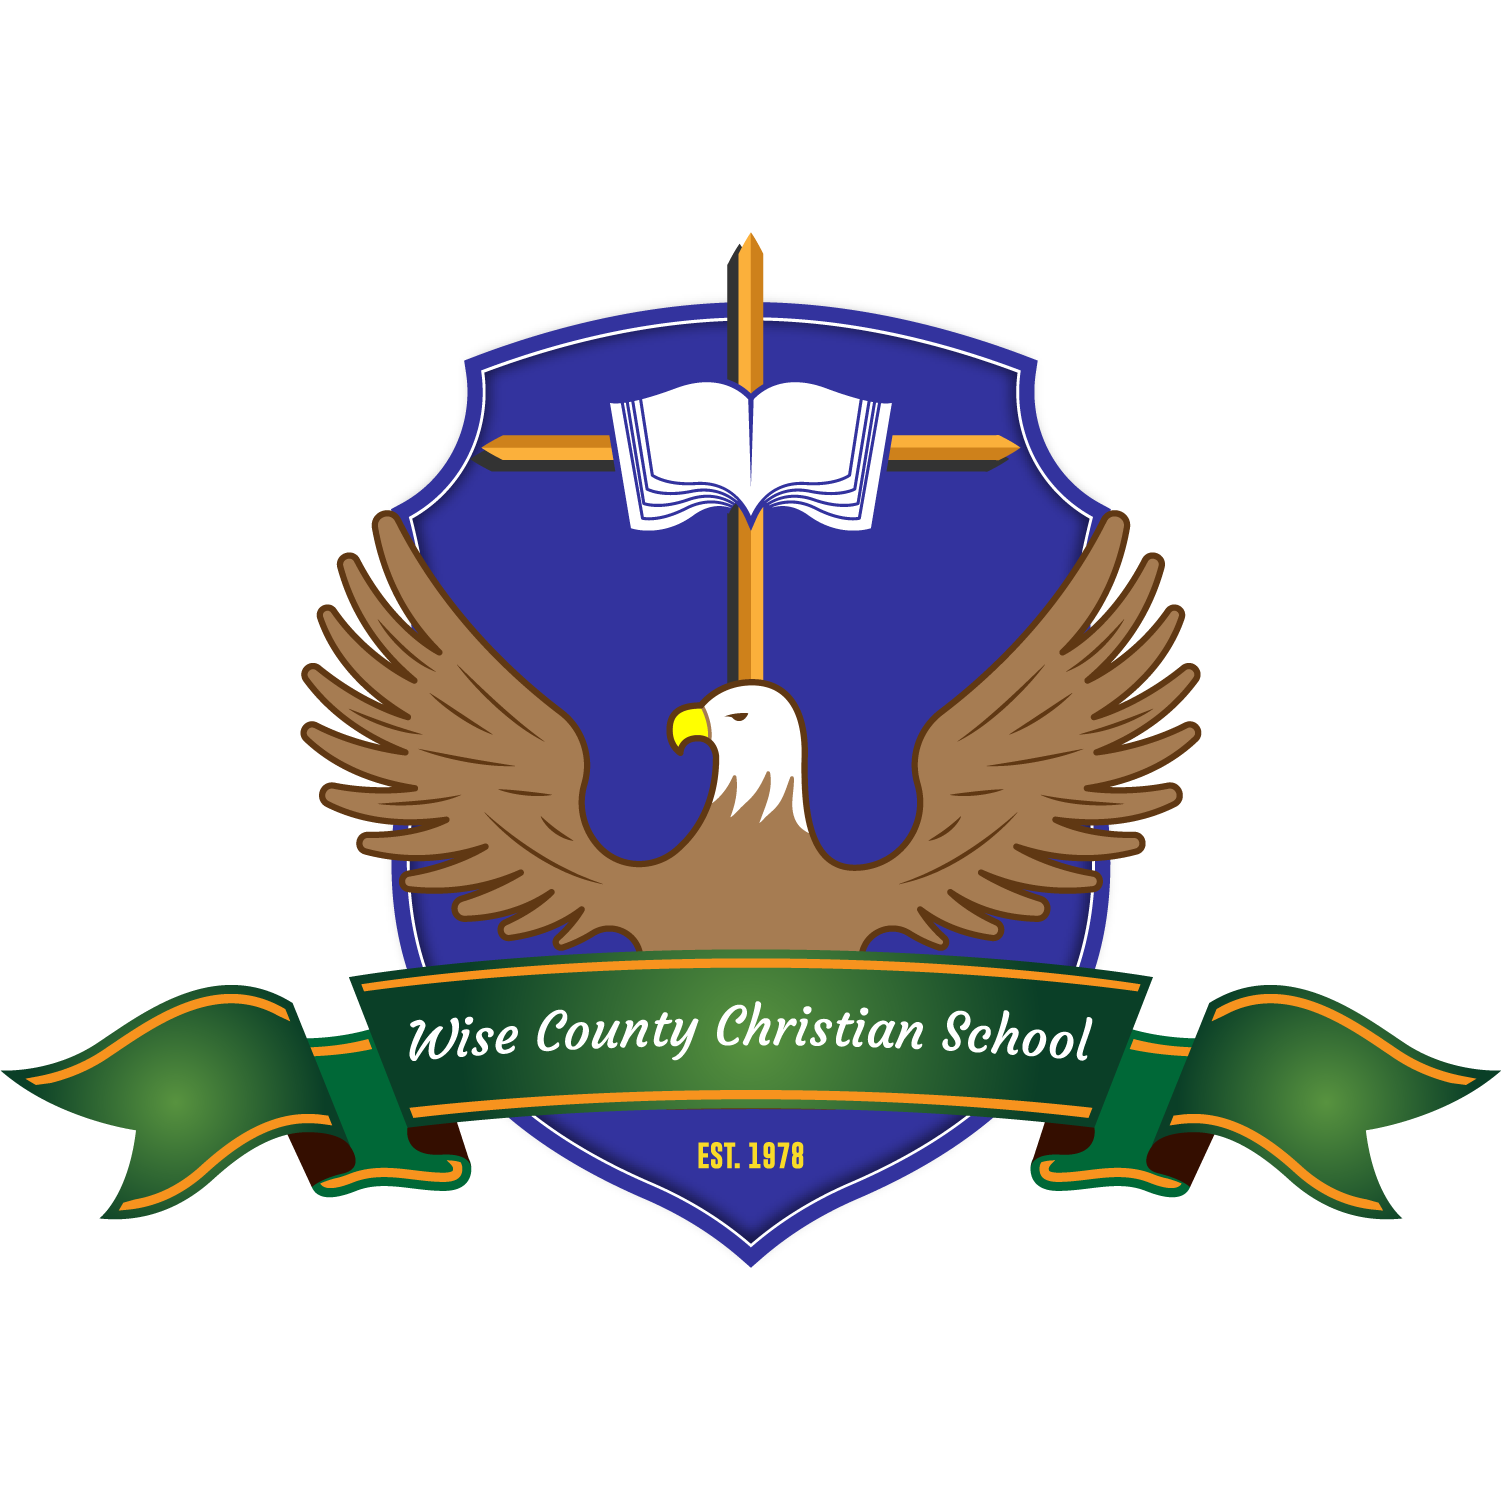 Wise County Christian School